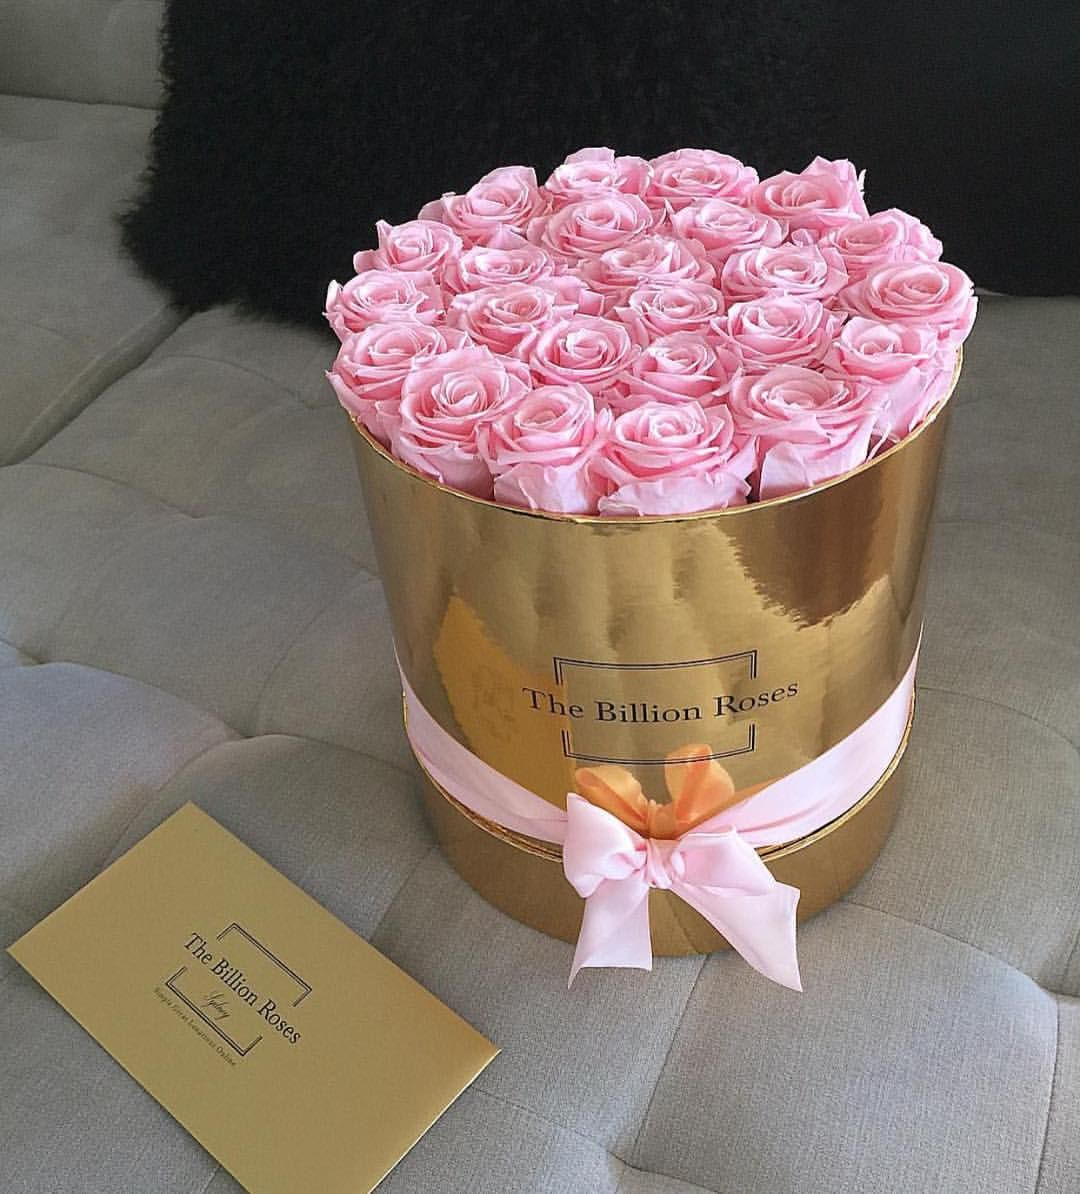 The Billion Roses Official En Instagram Baby Pink Obsession Keiramaguire Luxe Series Roses Billion Roses Flower Box Gift Luxury Flowers